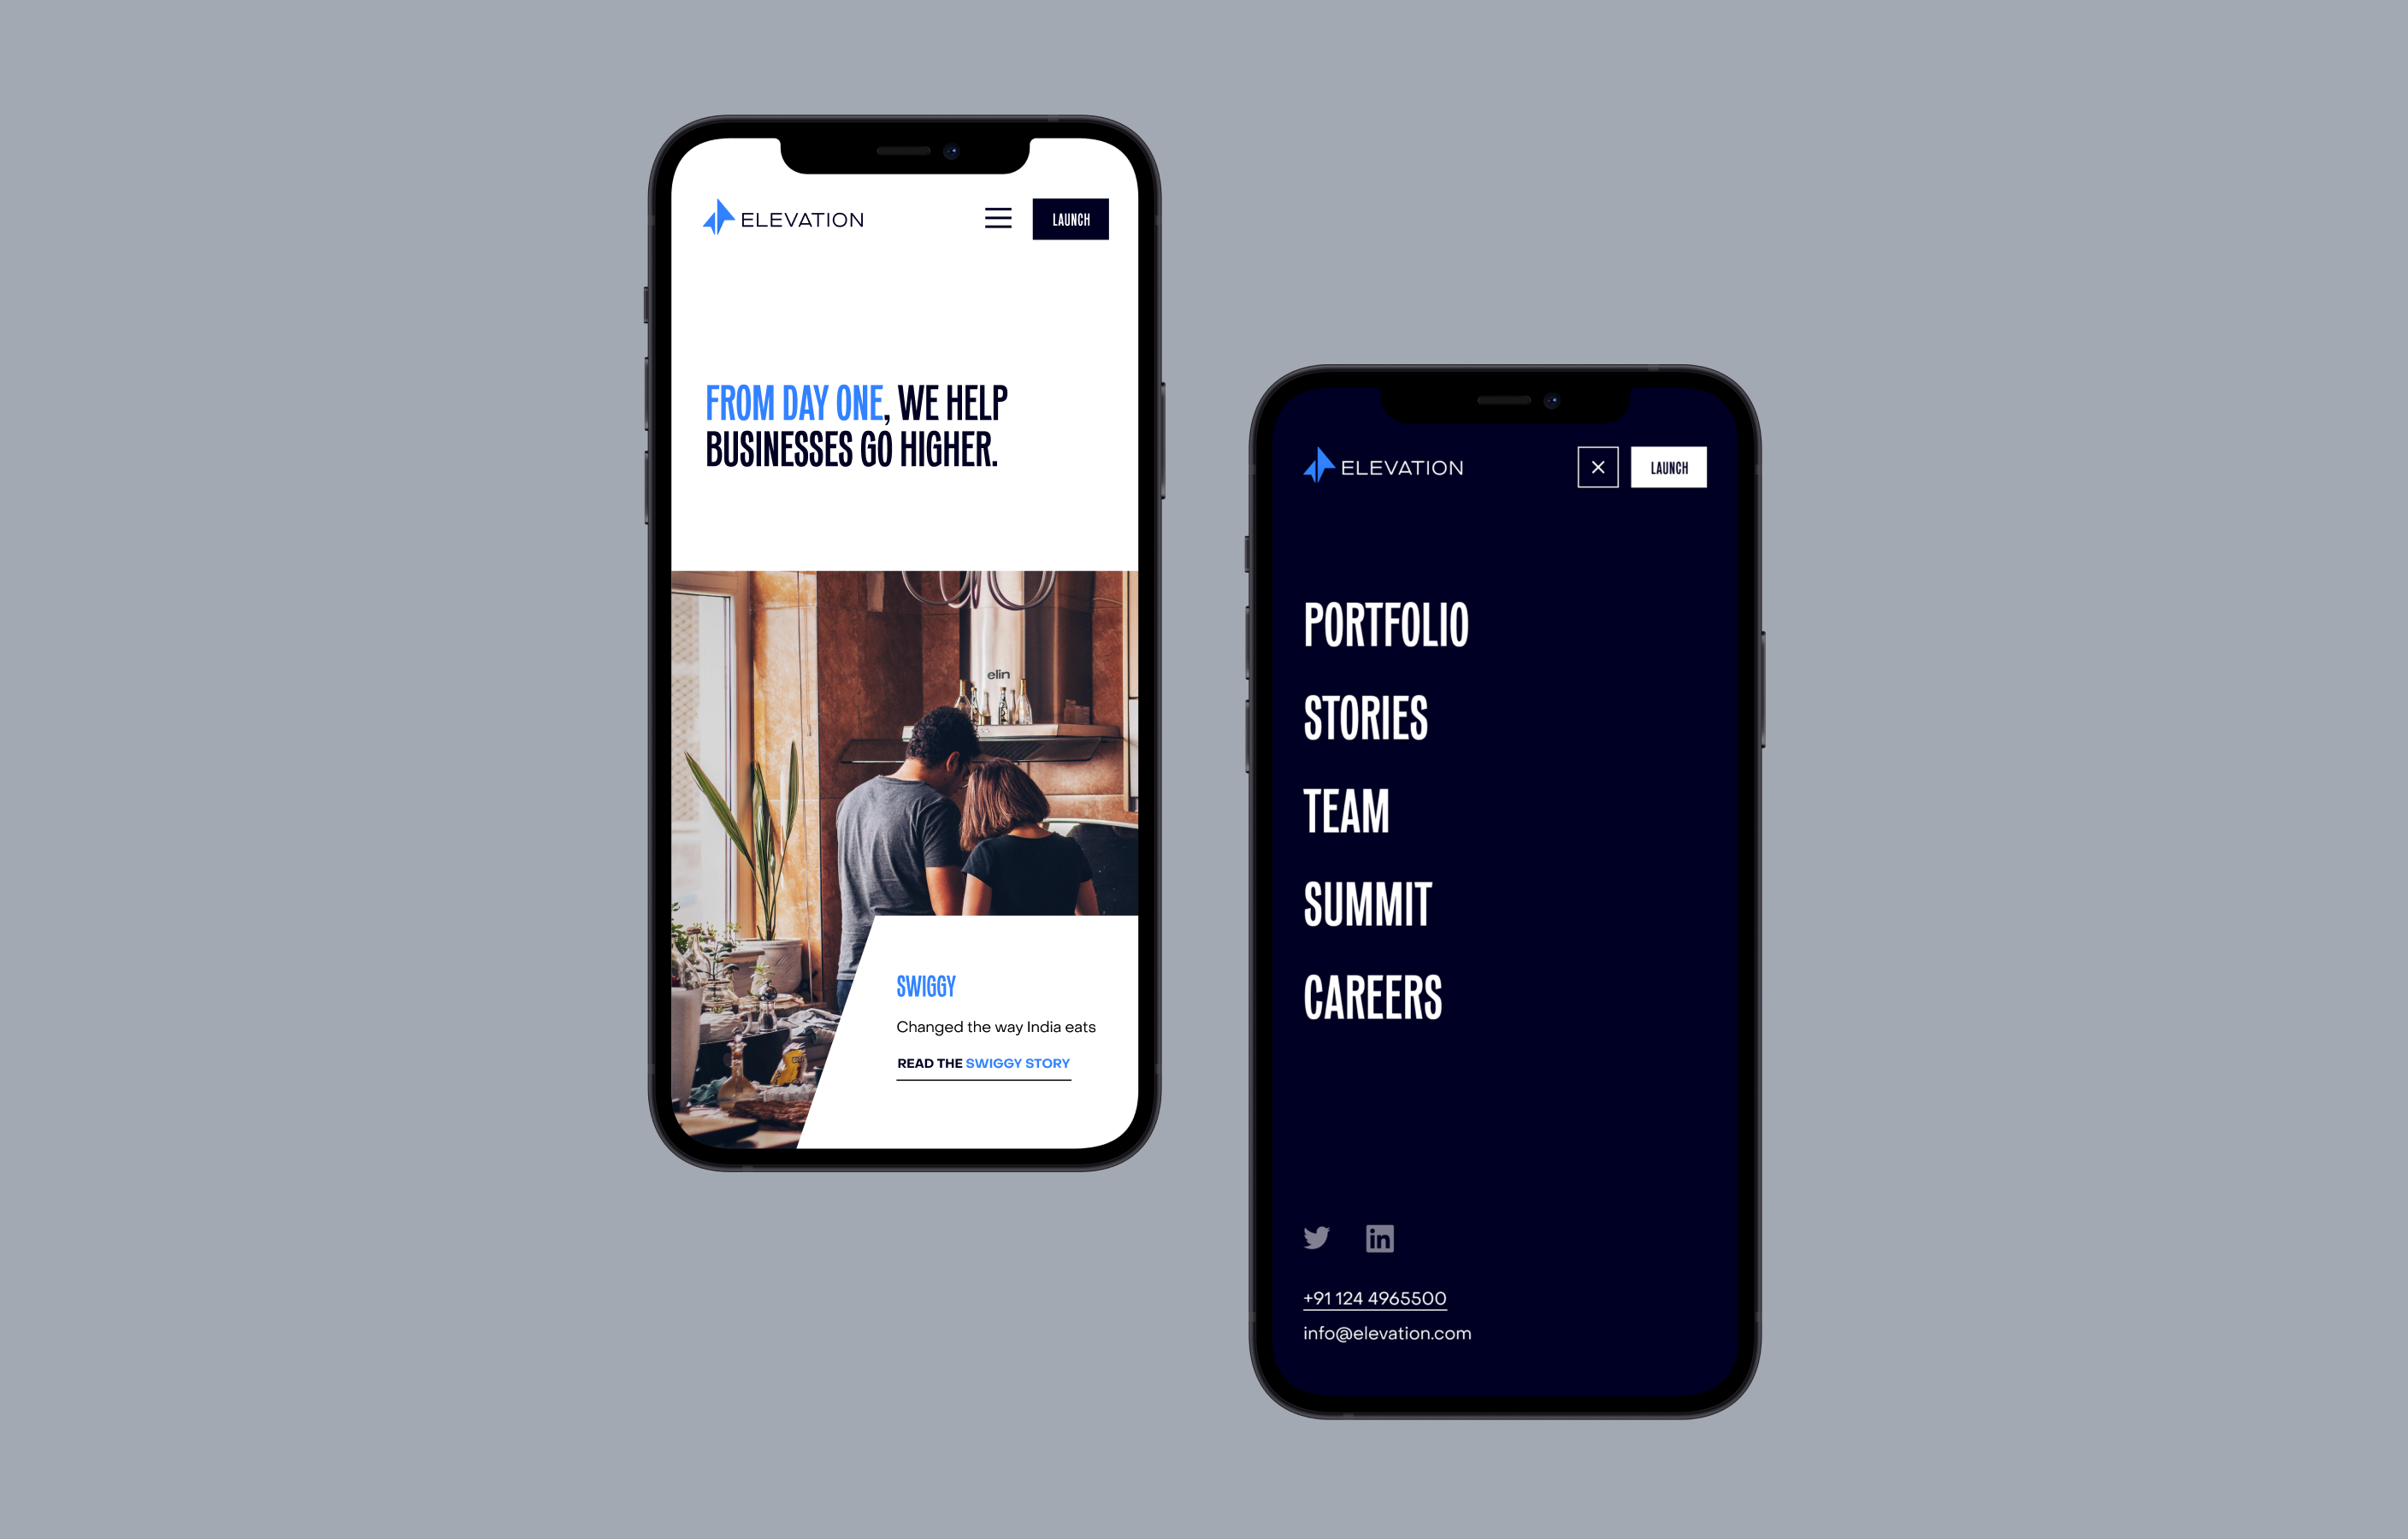 Two iPhones side by side showcasing the Elevation Capital homepage and mobile menu